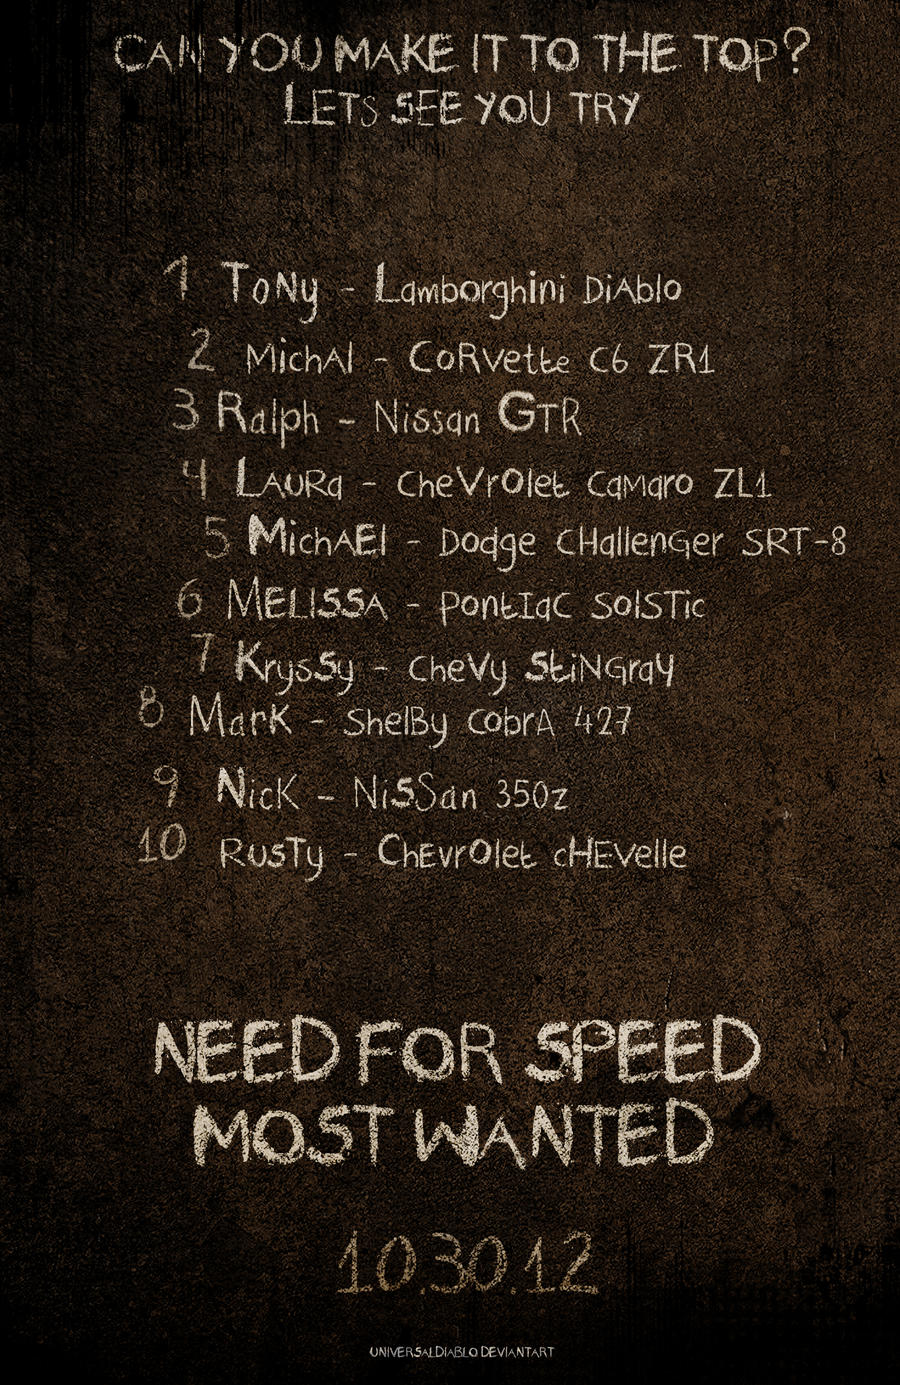 Need for speed most wanted blacklist 6